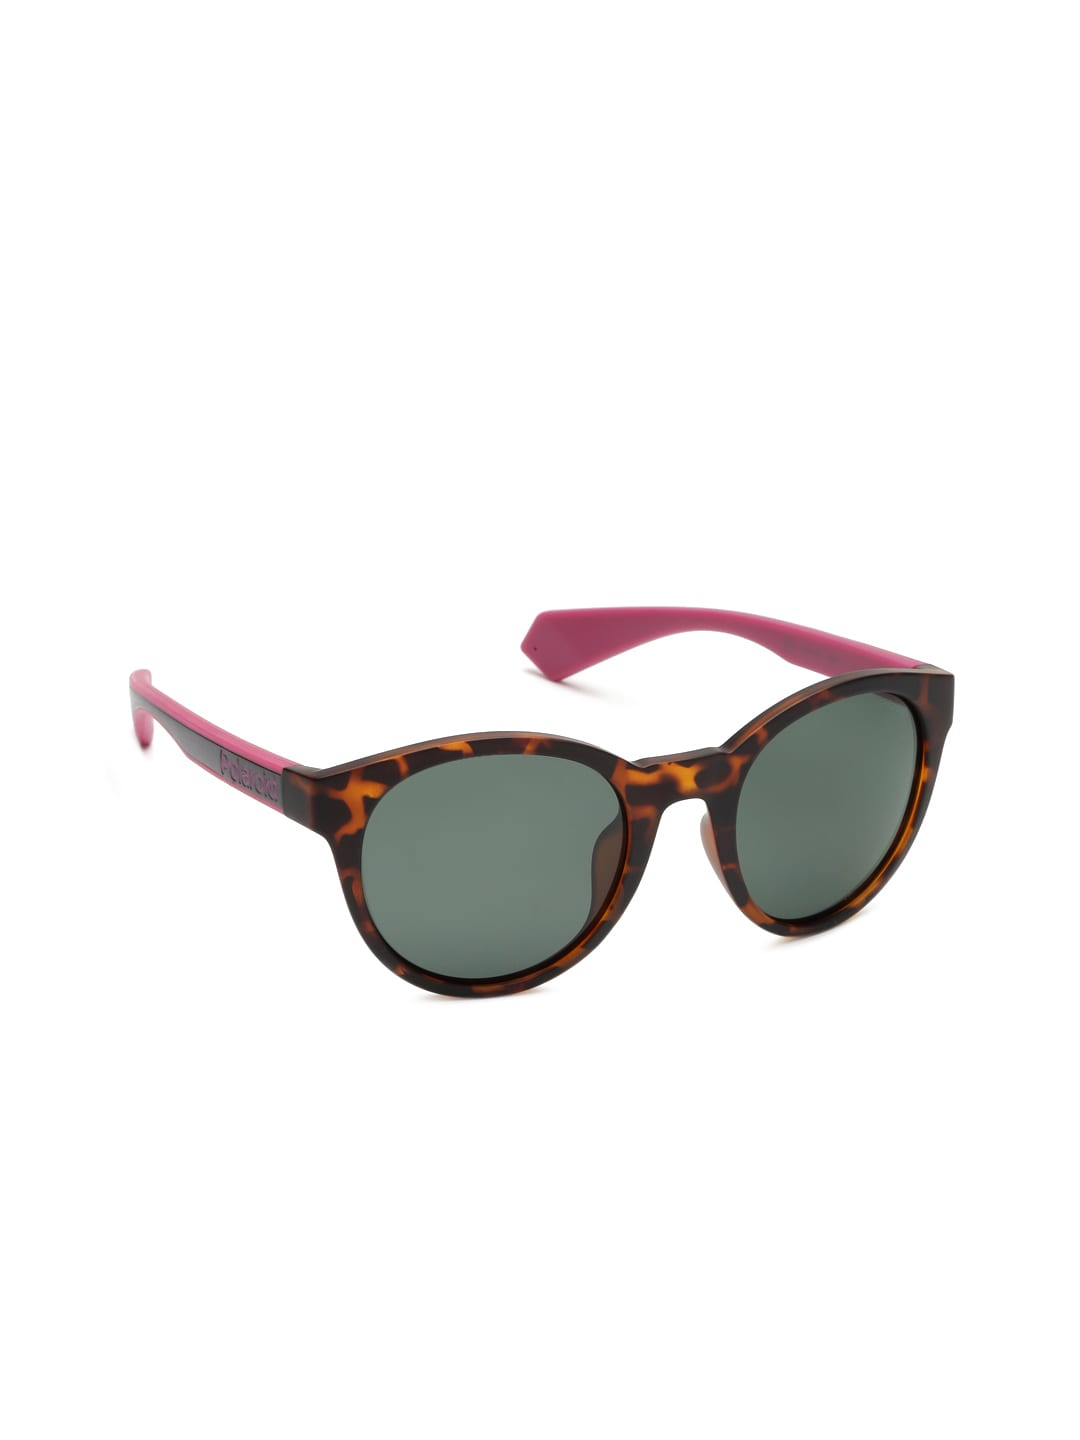 00f78507d7c Steel Grey Sunglasses - Buy Steel Grey Sunglasses online in India